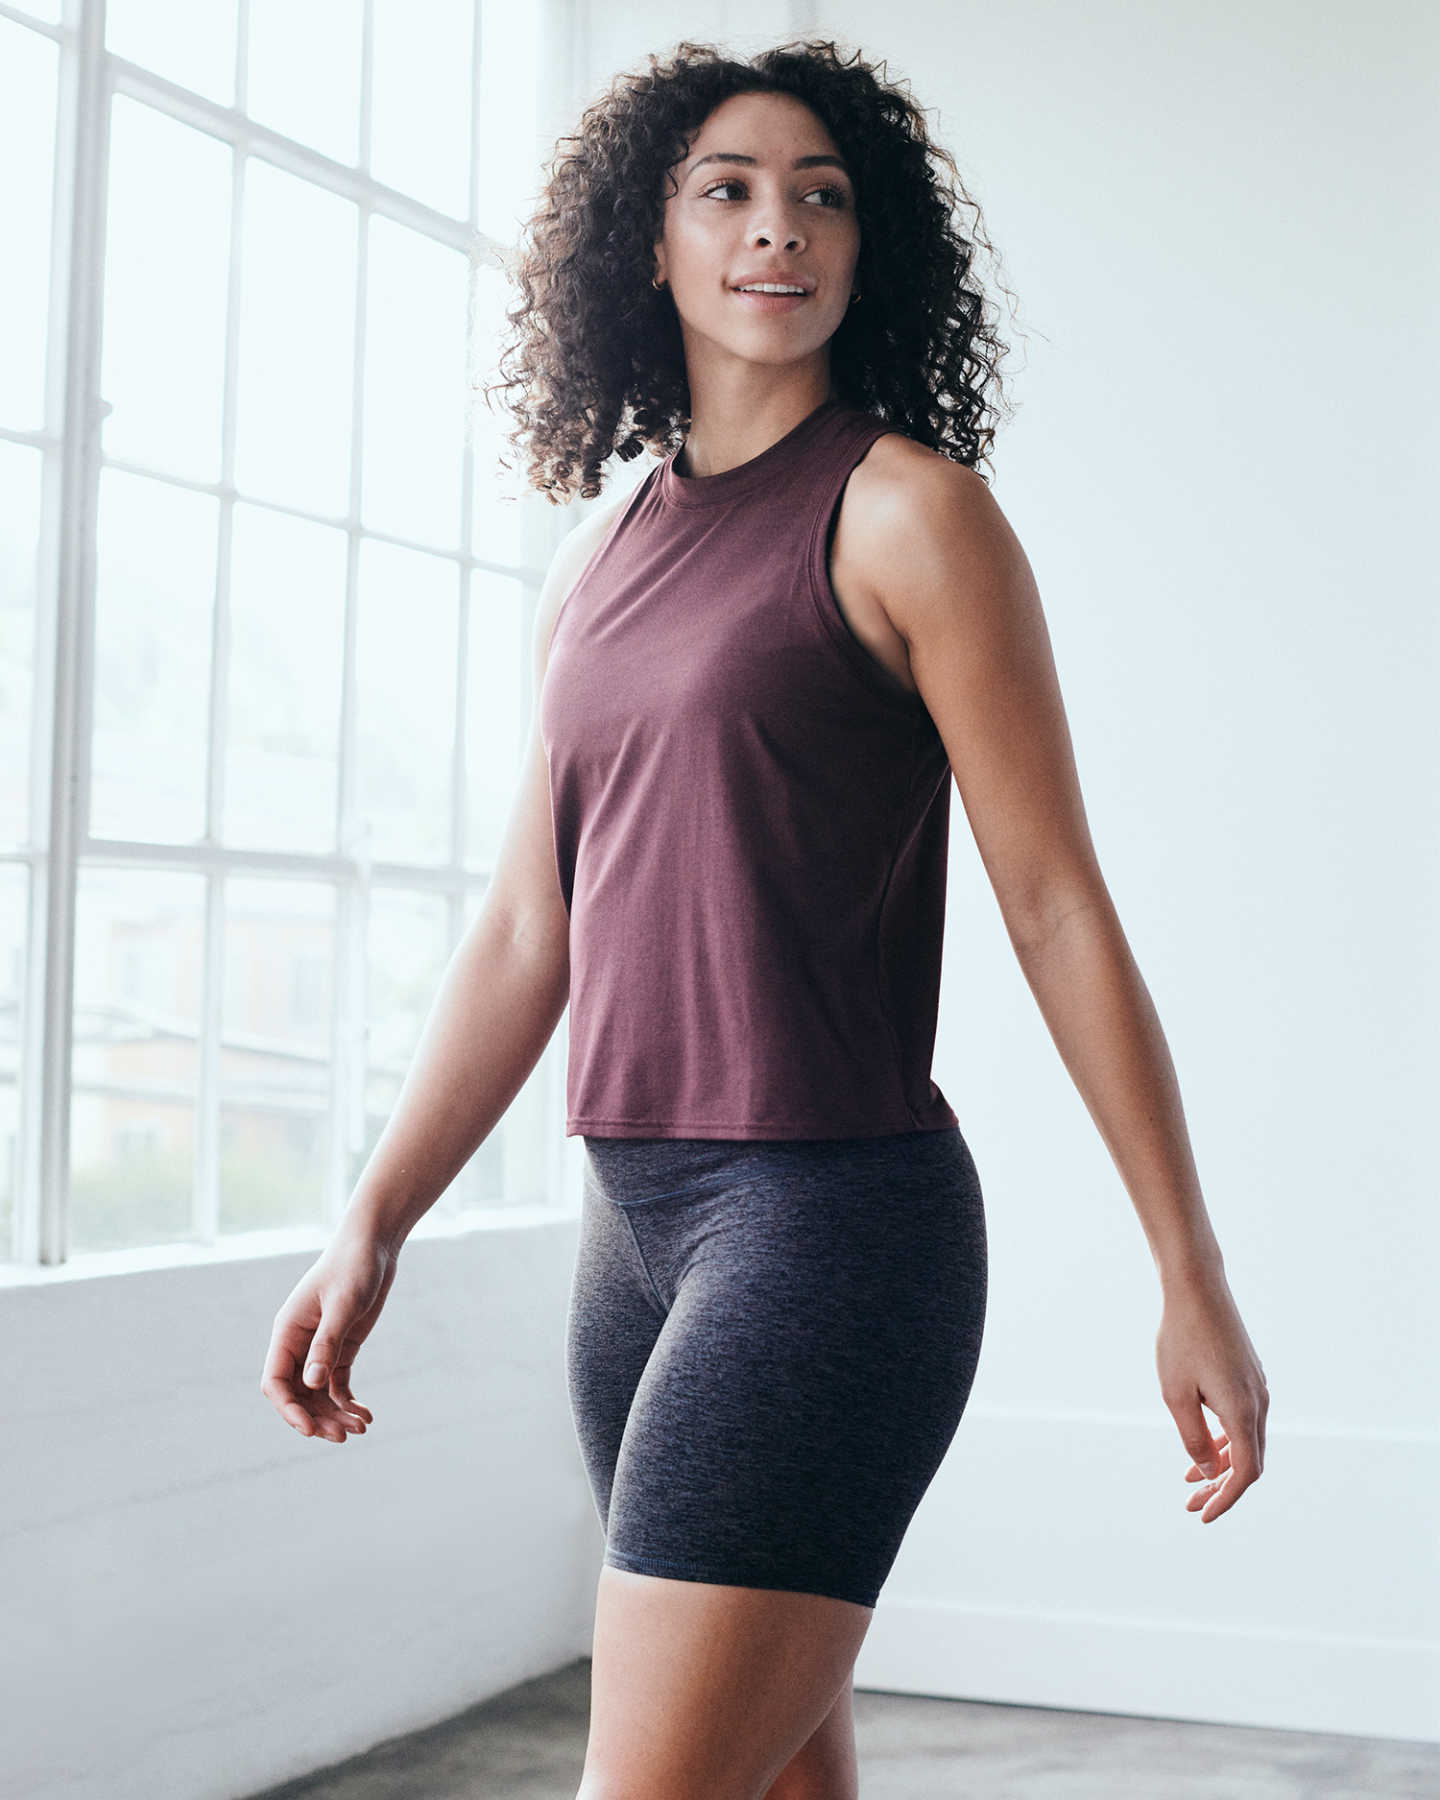 Flowknit Ultra-Soft Performance Tank - Burgundy - 6